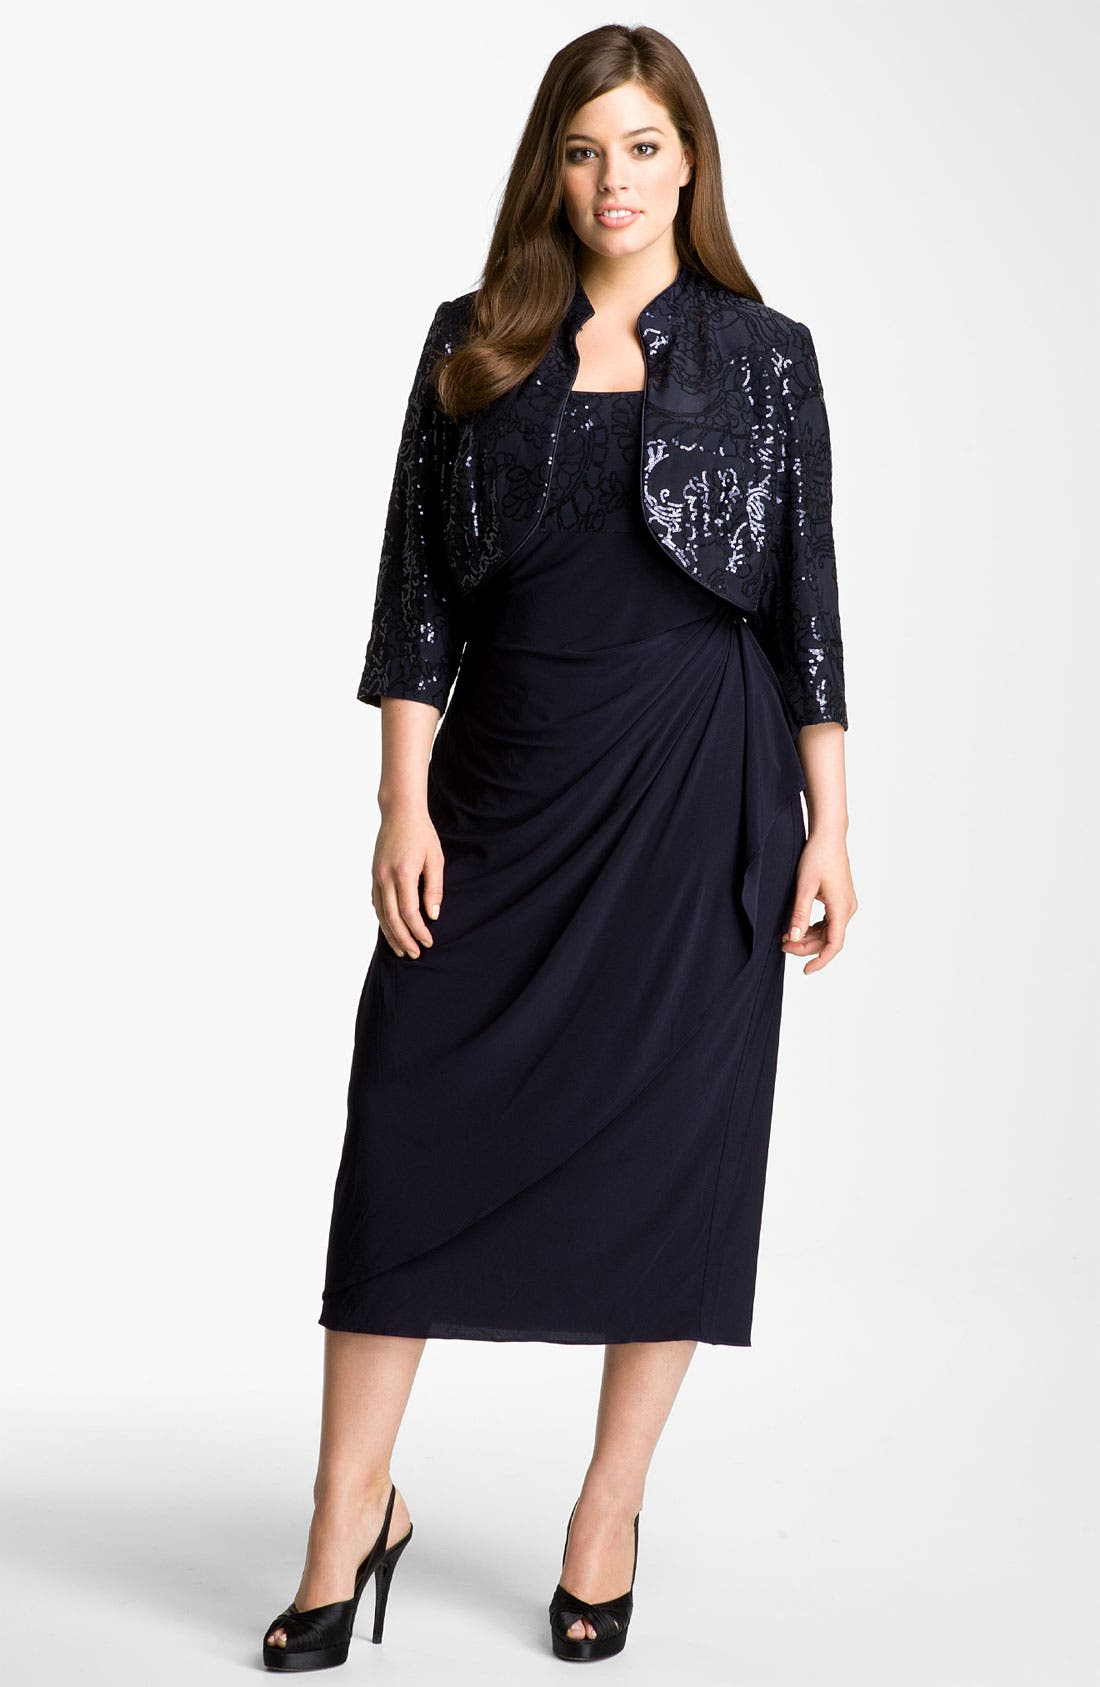 Main Image - Alex Evenings Gathered Dress & Jacket (Plus Size)